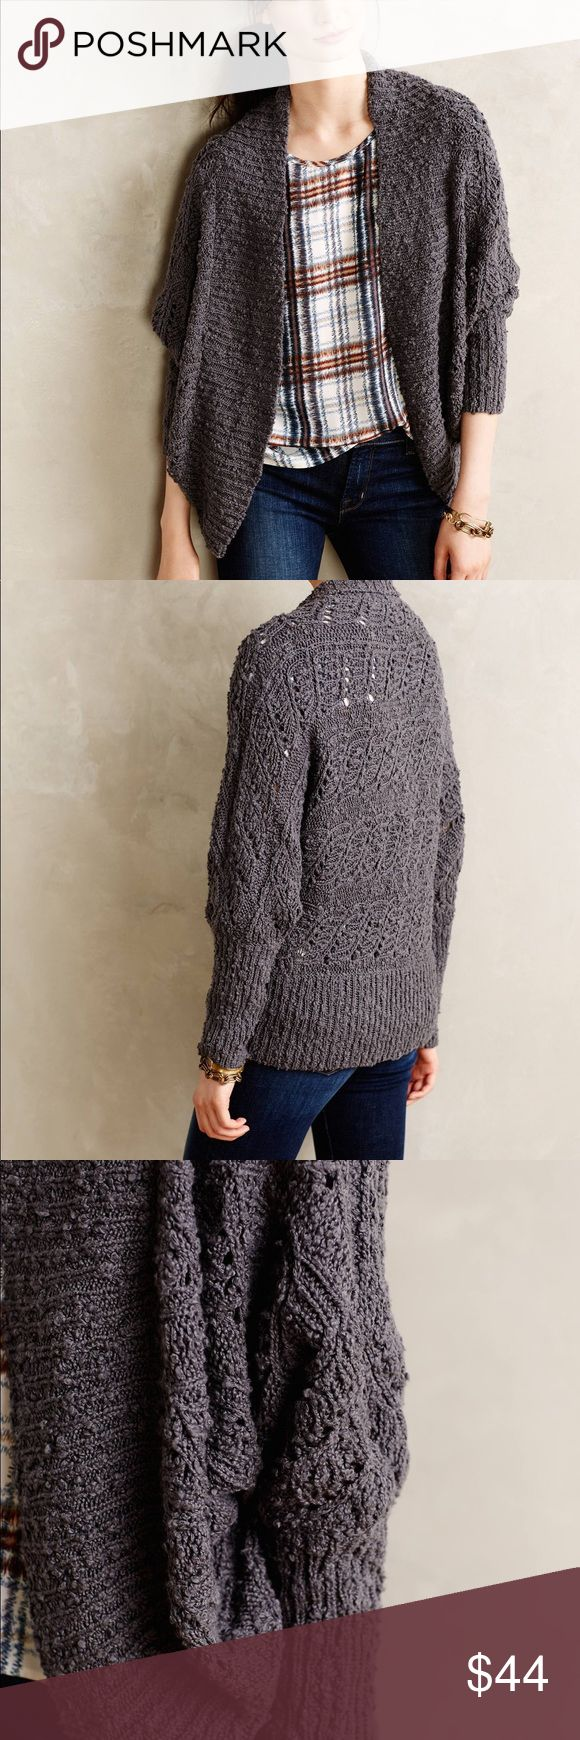 Anthropologie moth amhest cocoon cardigan